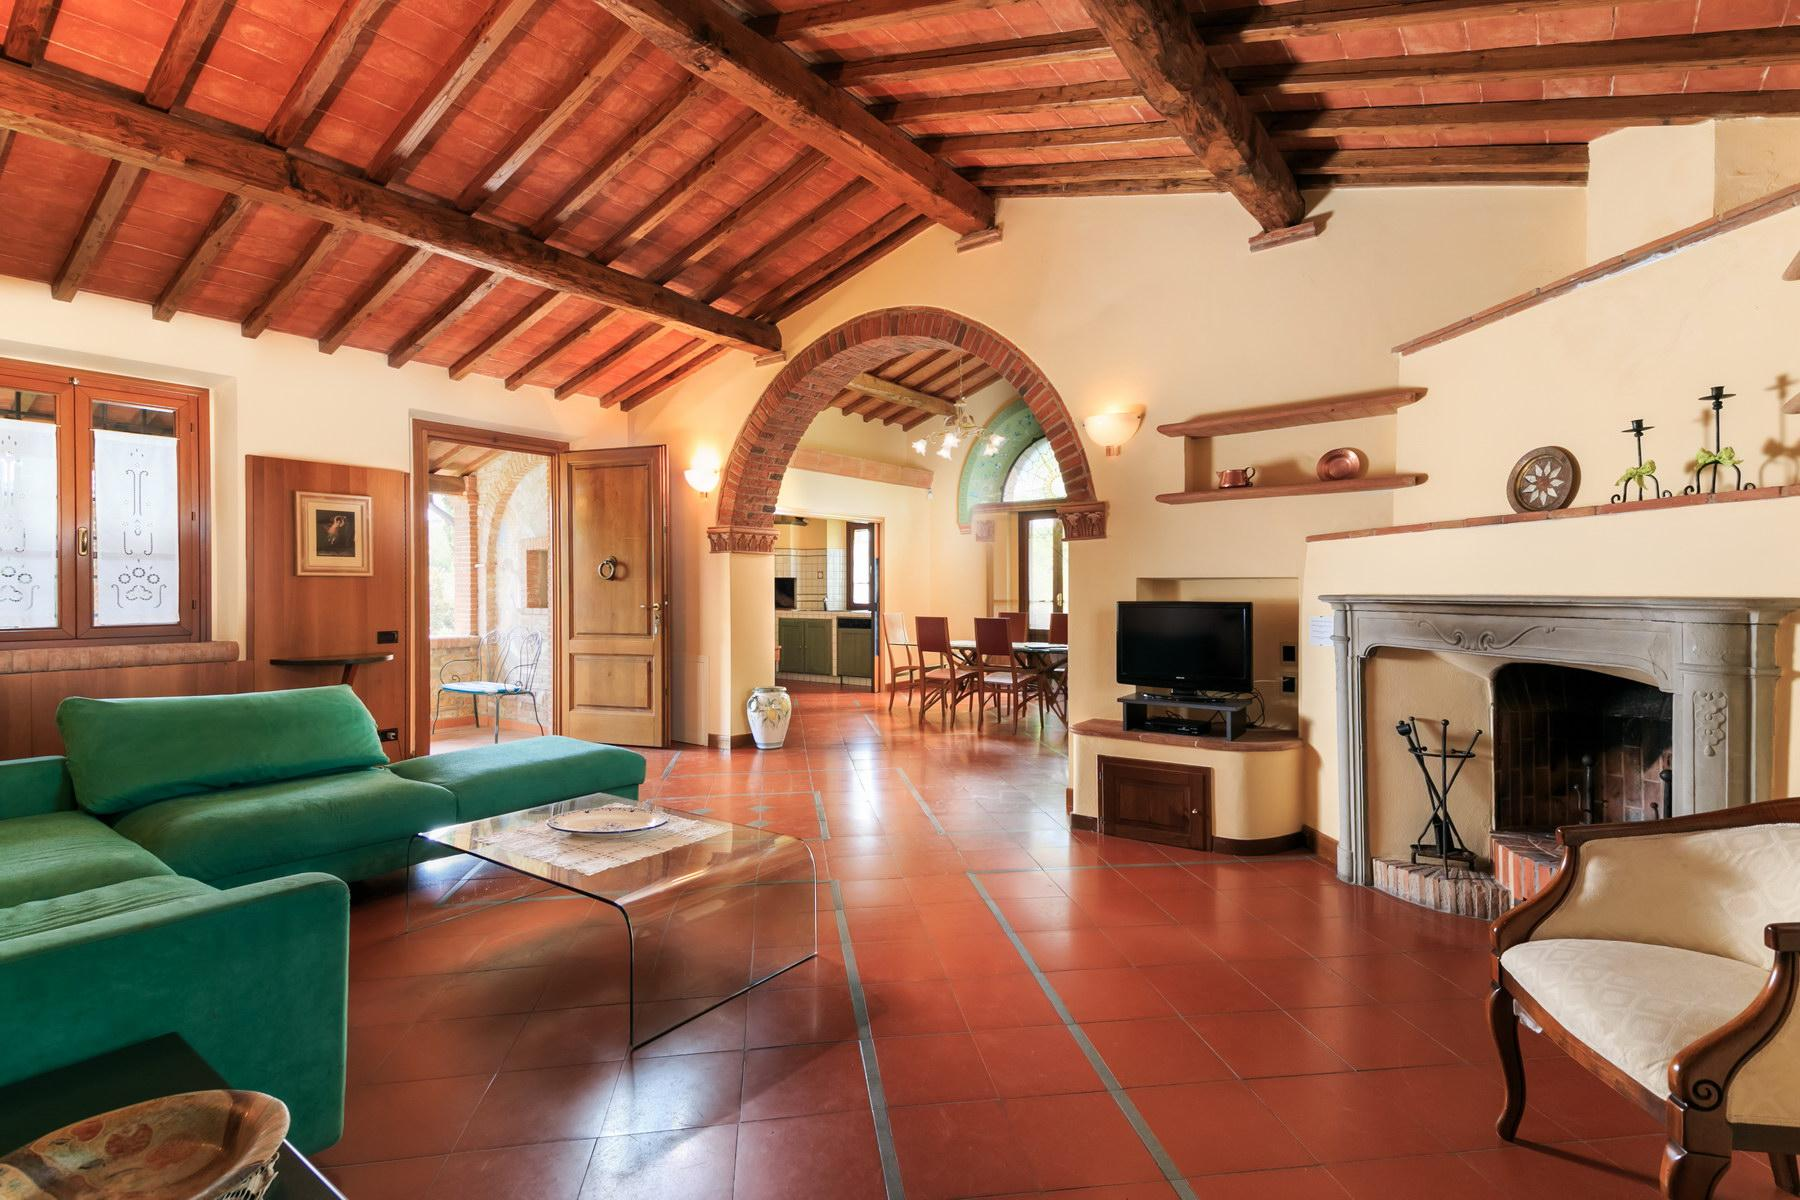 Wonderful countryhouse in the tuscan countryside - 5